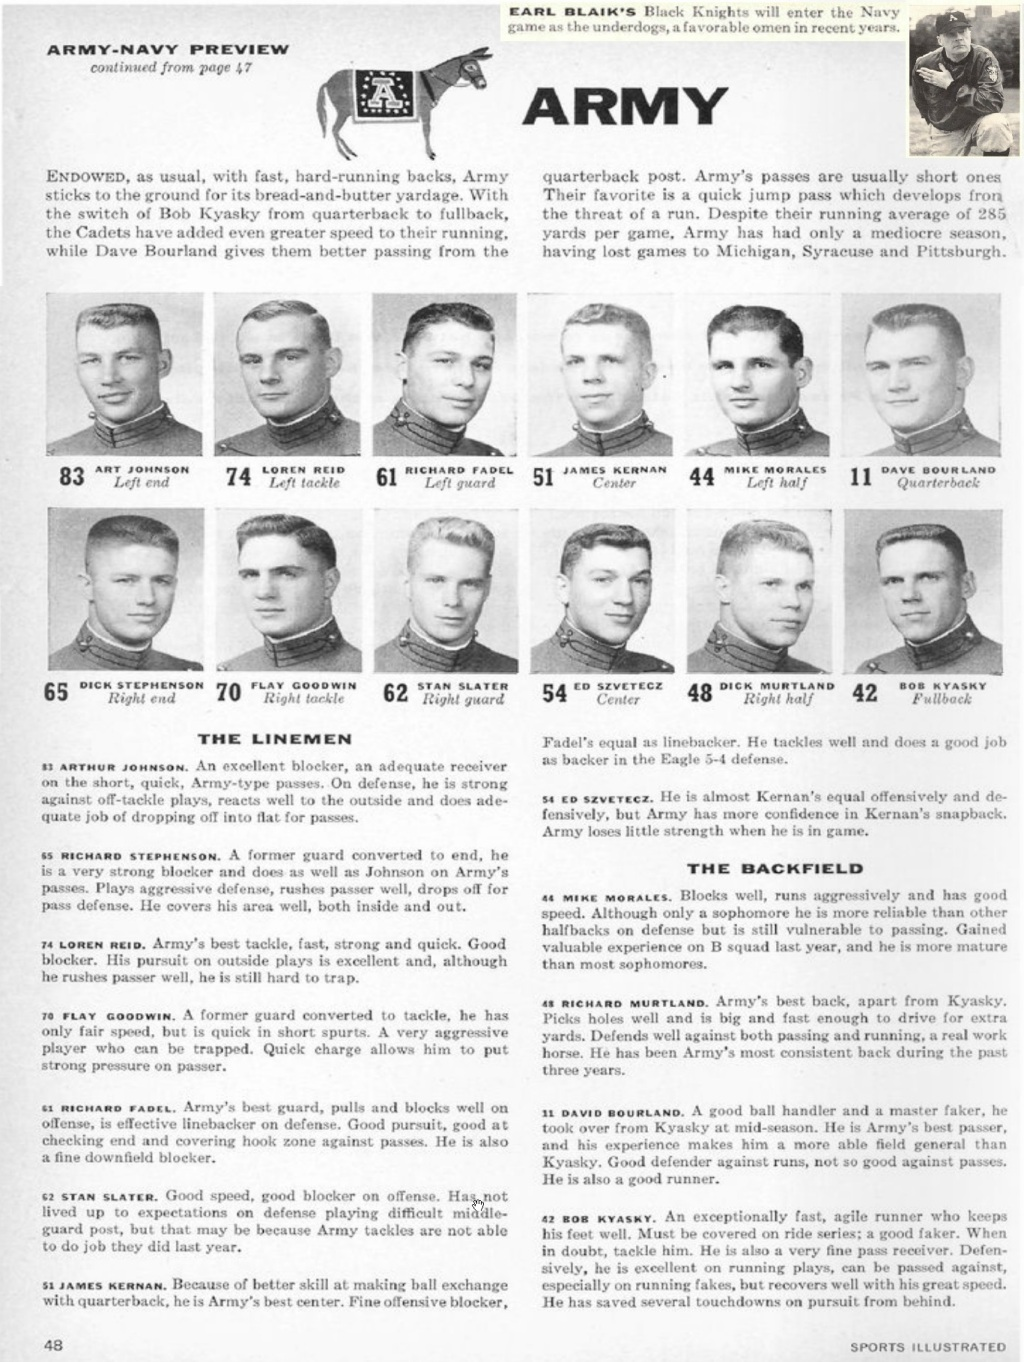 ArmyFB_1956_vsNavy_Players_SI_Dec31956